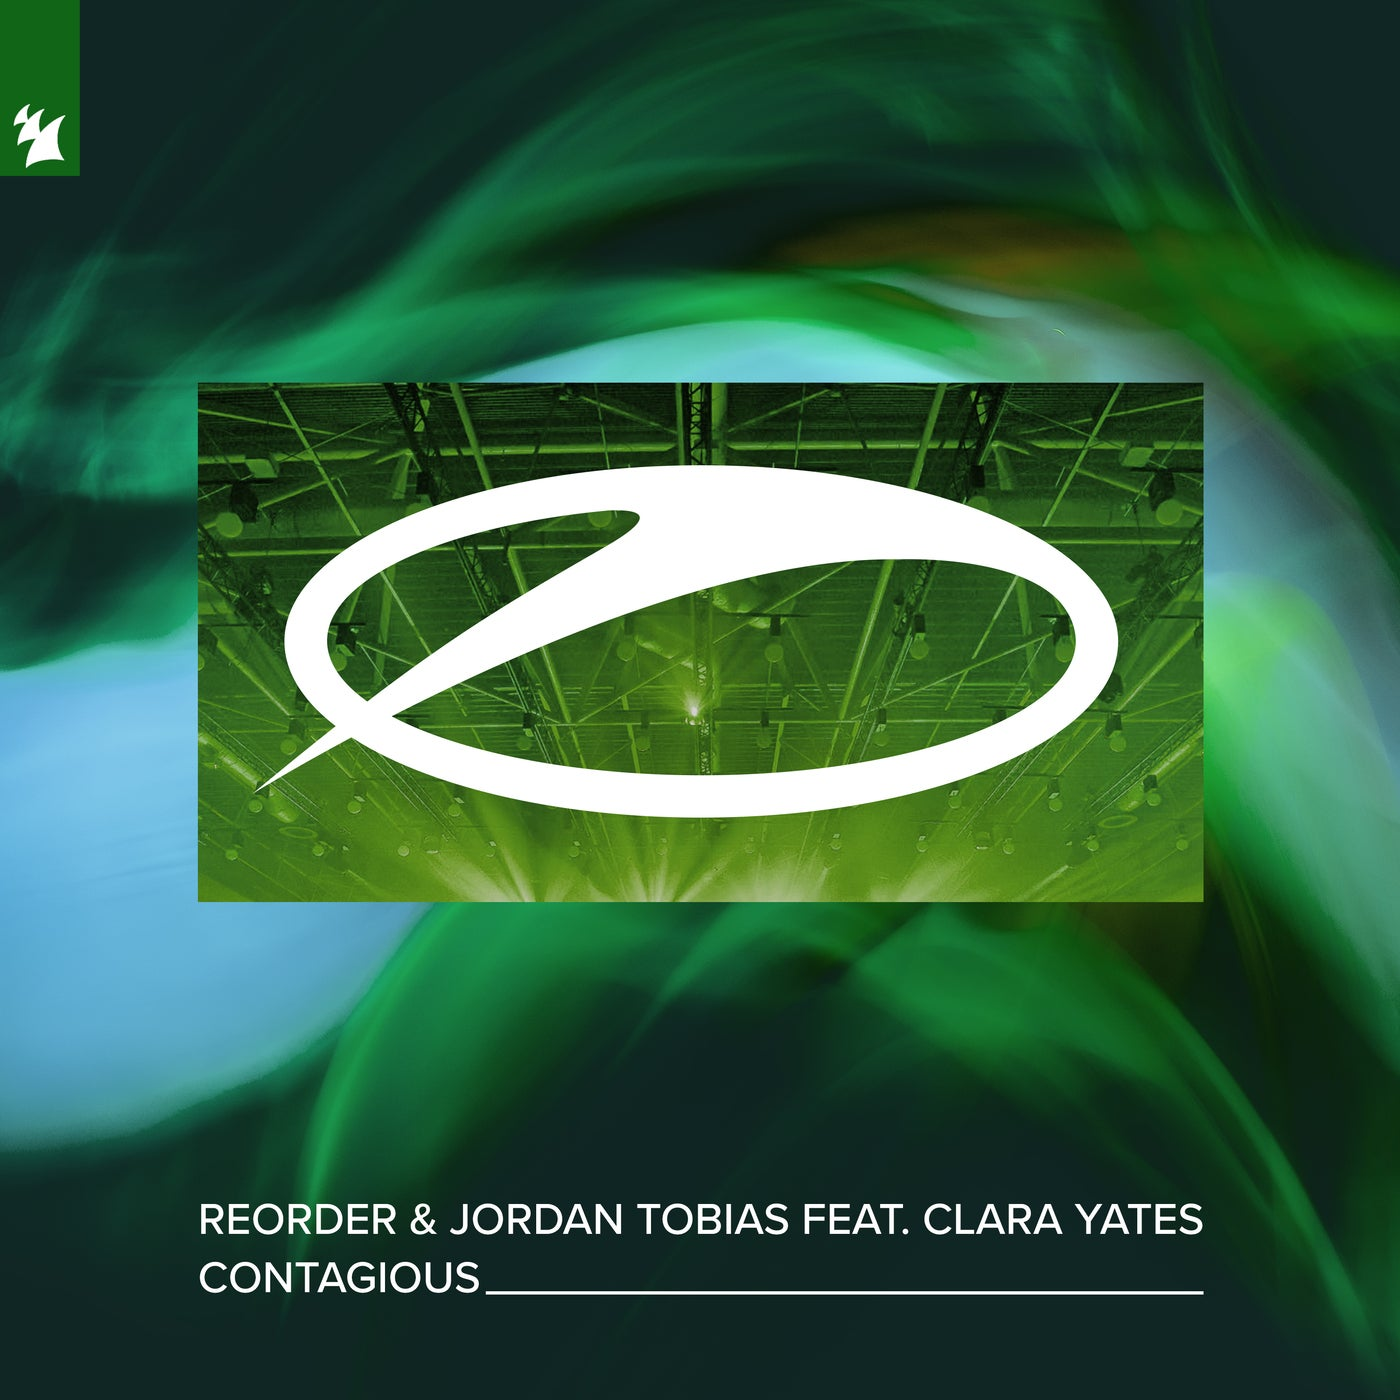 Contagious feat. Clara Yates (Extended Mix)